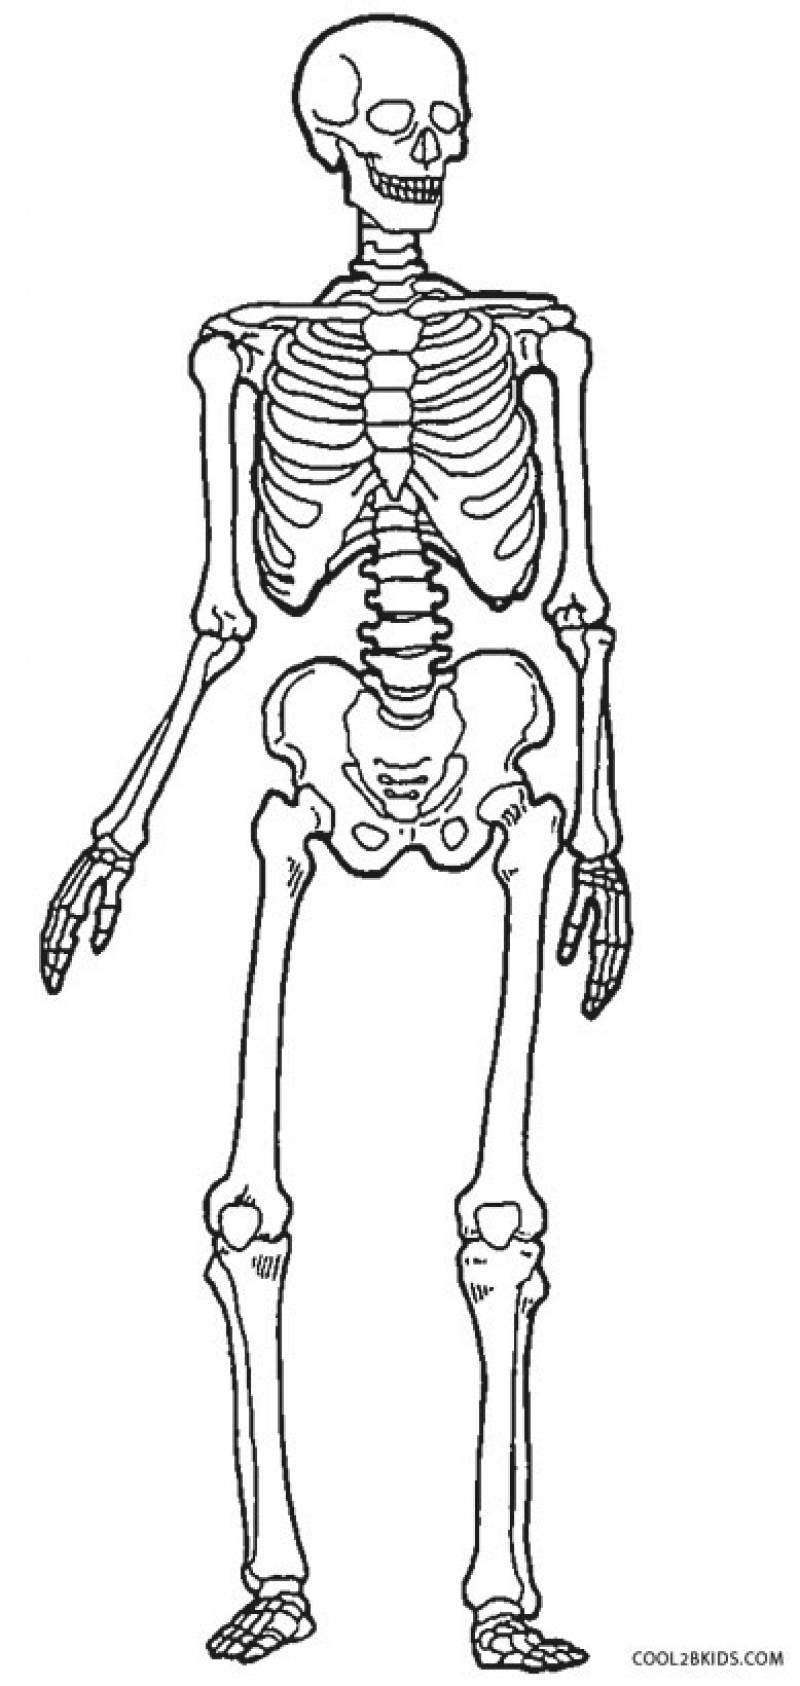 800x1686 Human Skeleton Coloring Page Tenderness.co